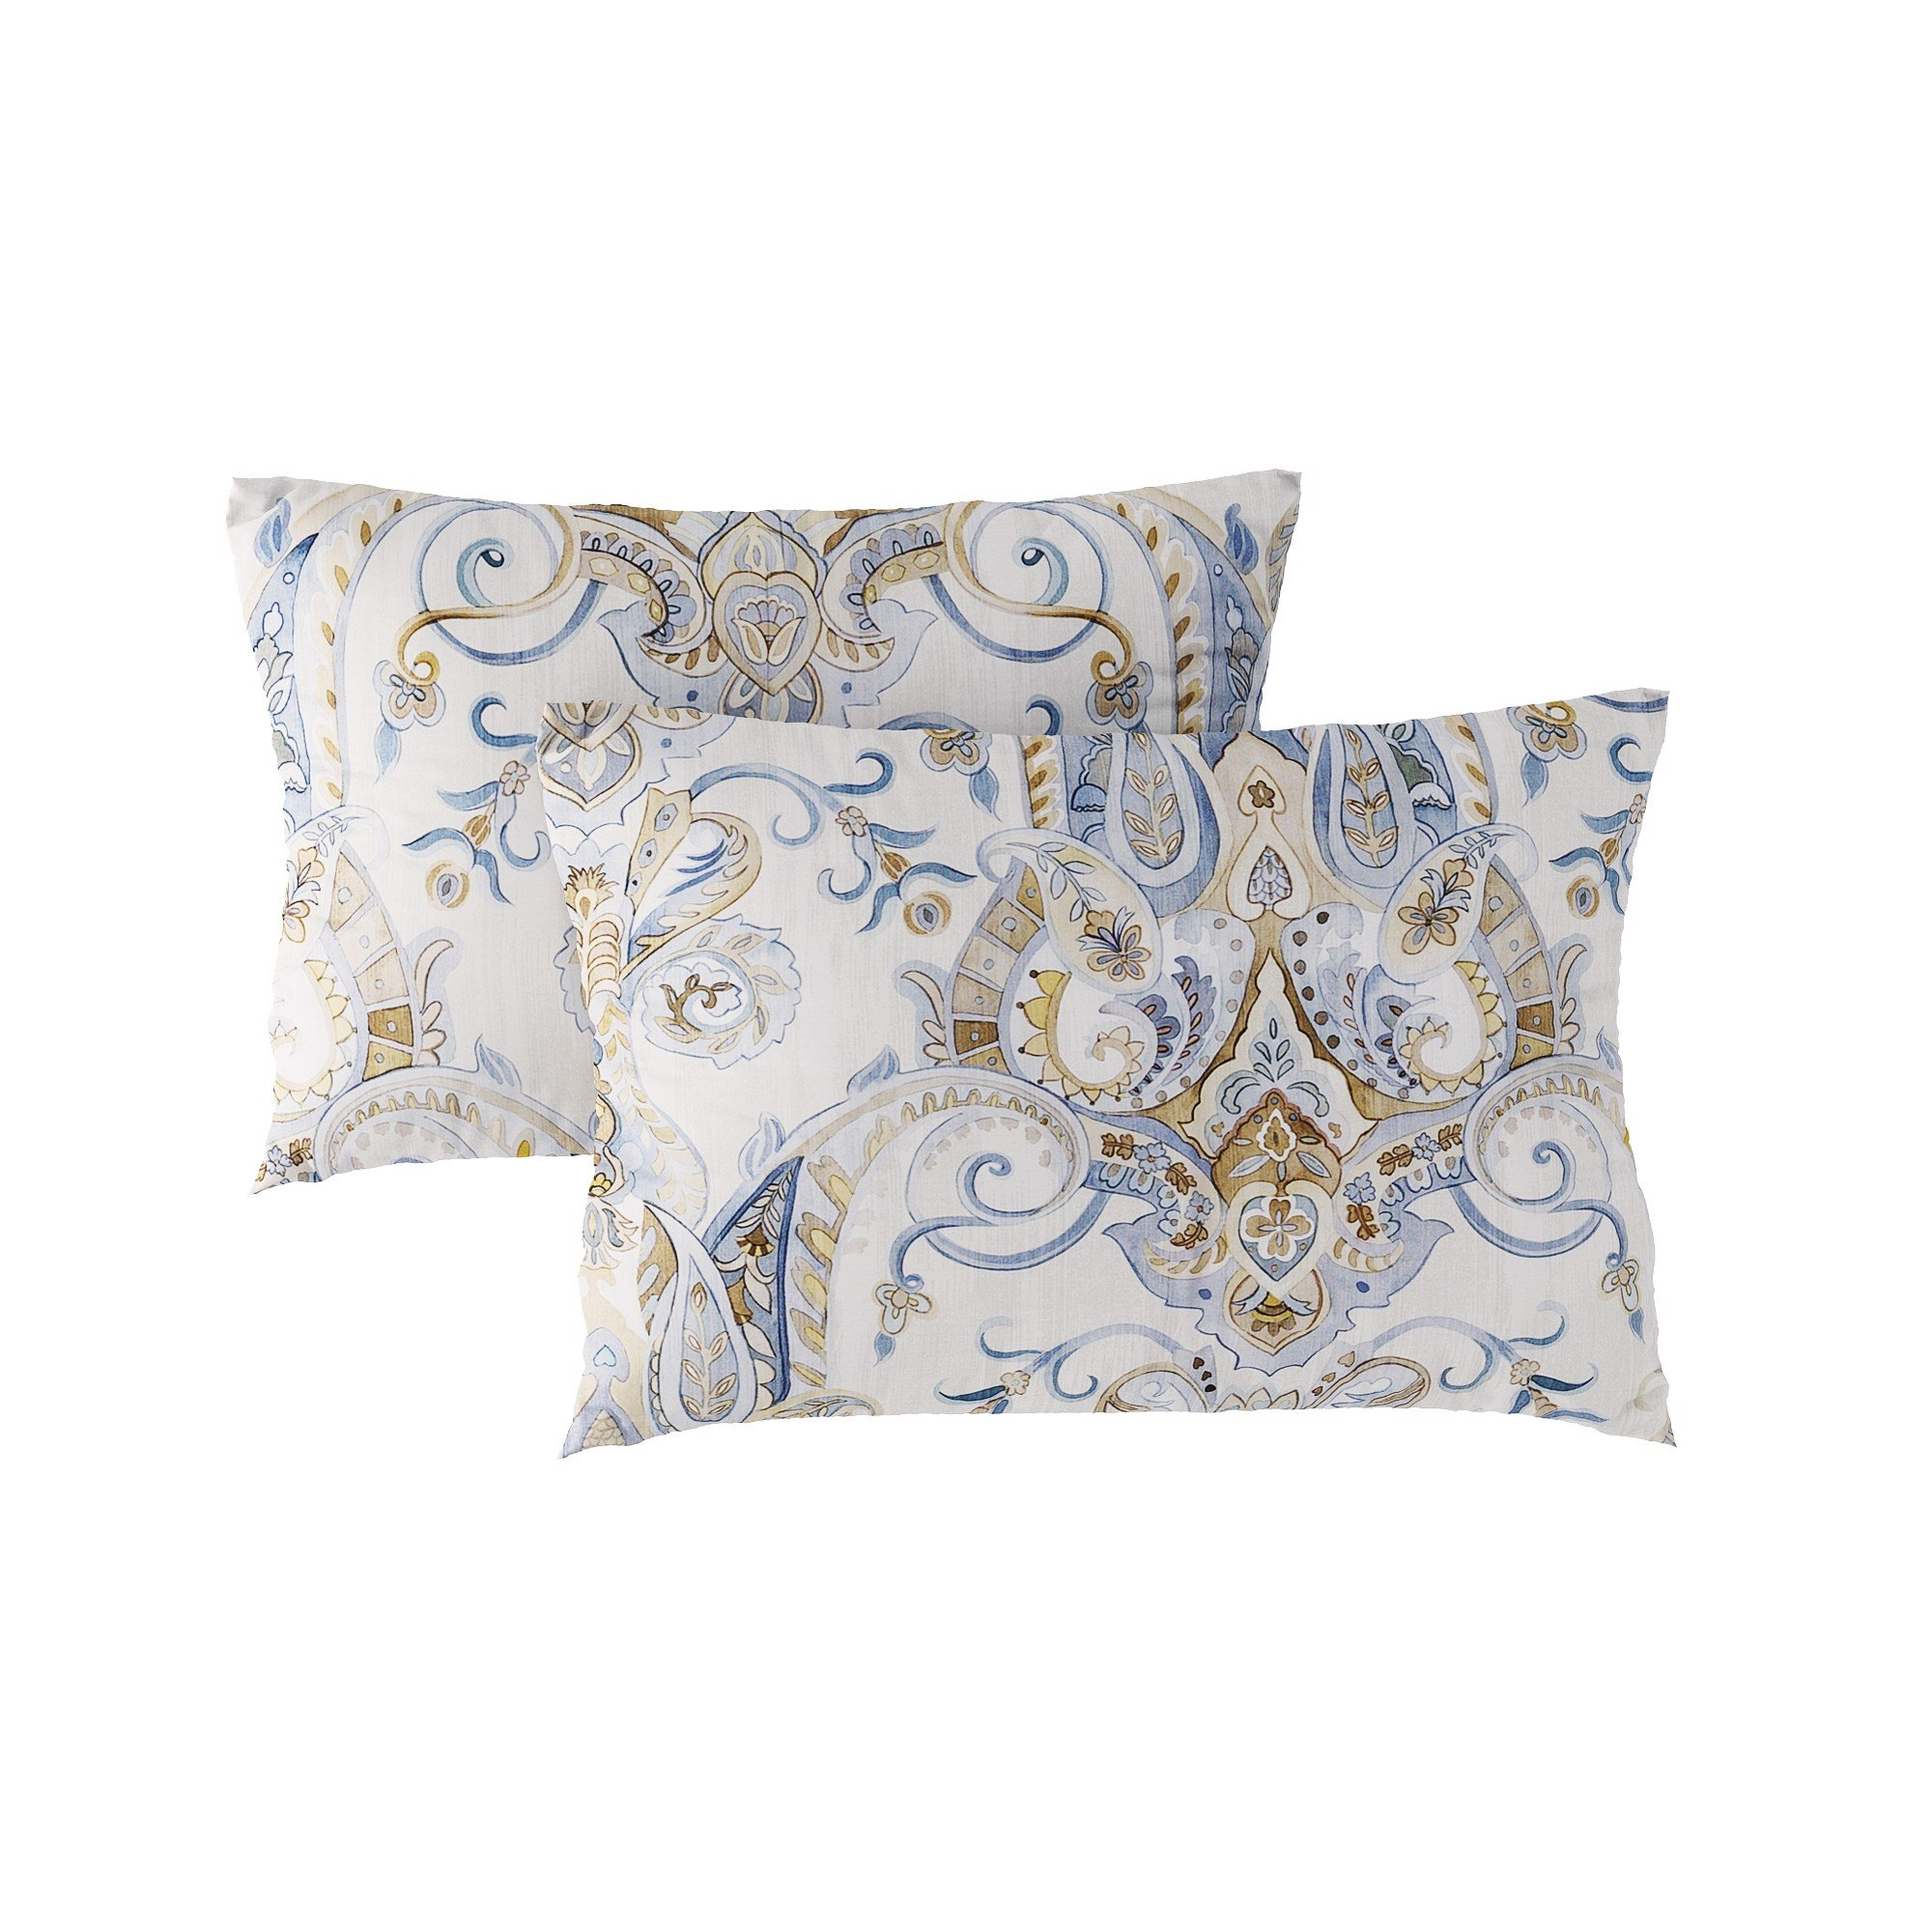 Pillow case 176 Vintage floral